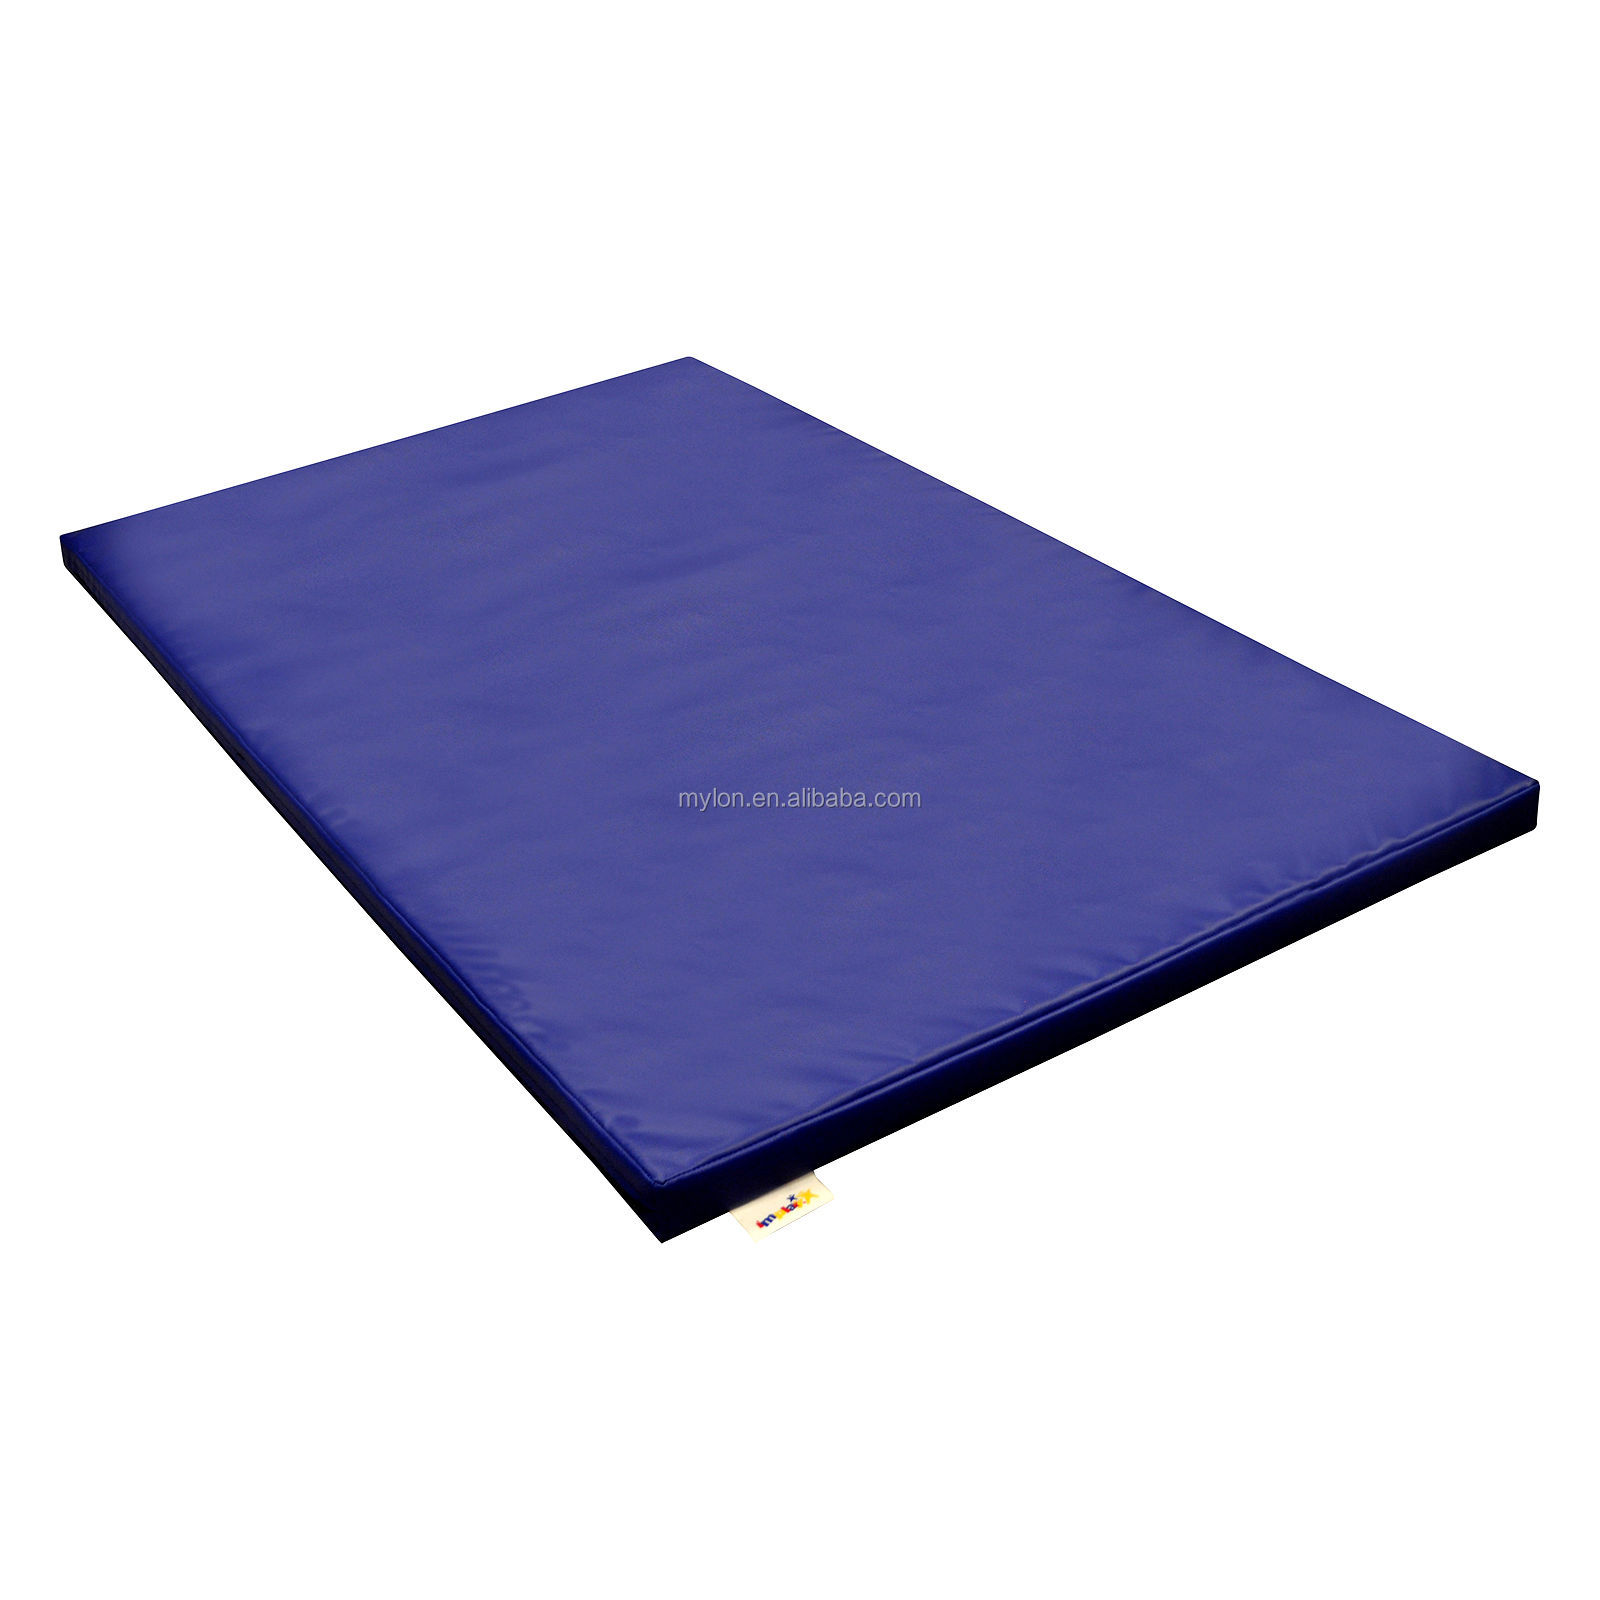 gymnastics vinyl for accessories velcro mats tumbling foam home big panel accesories tumbl trak